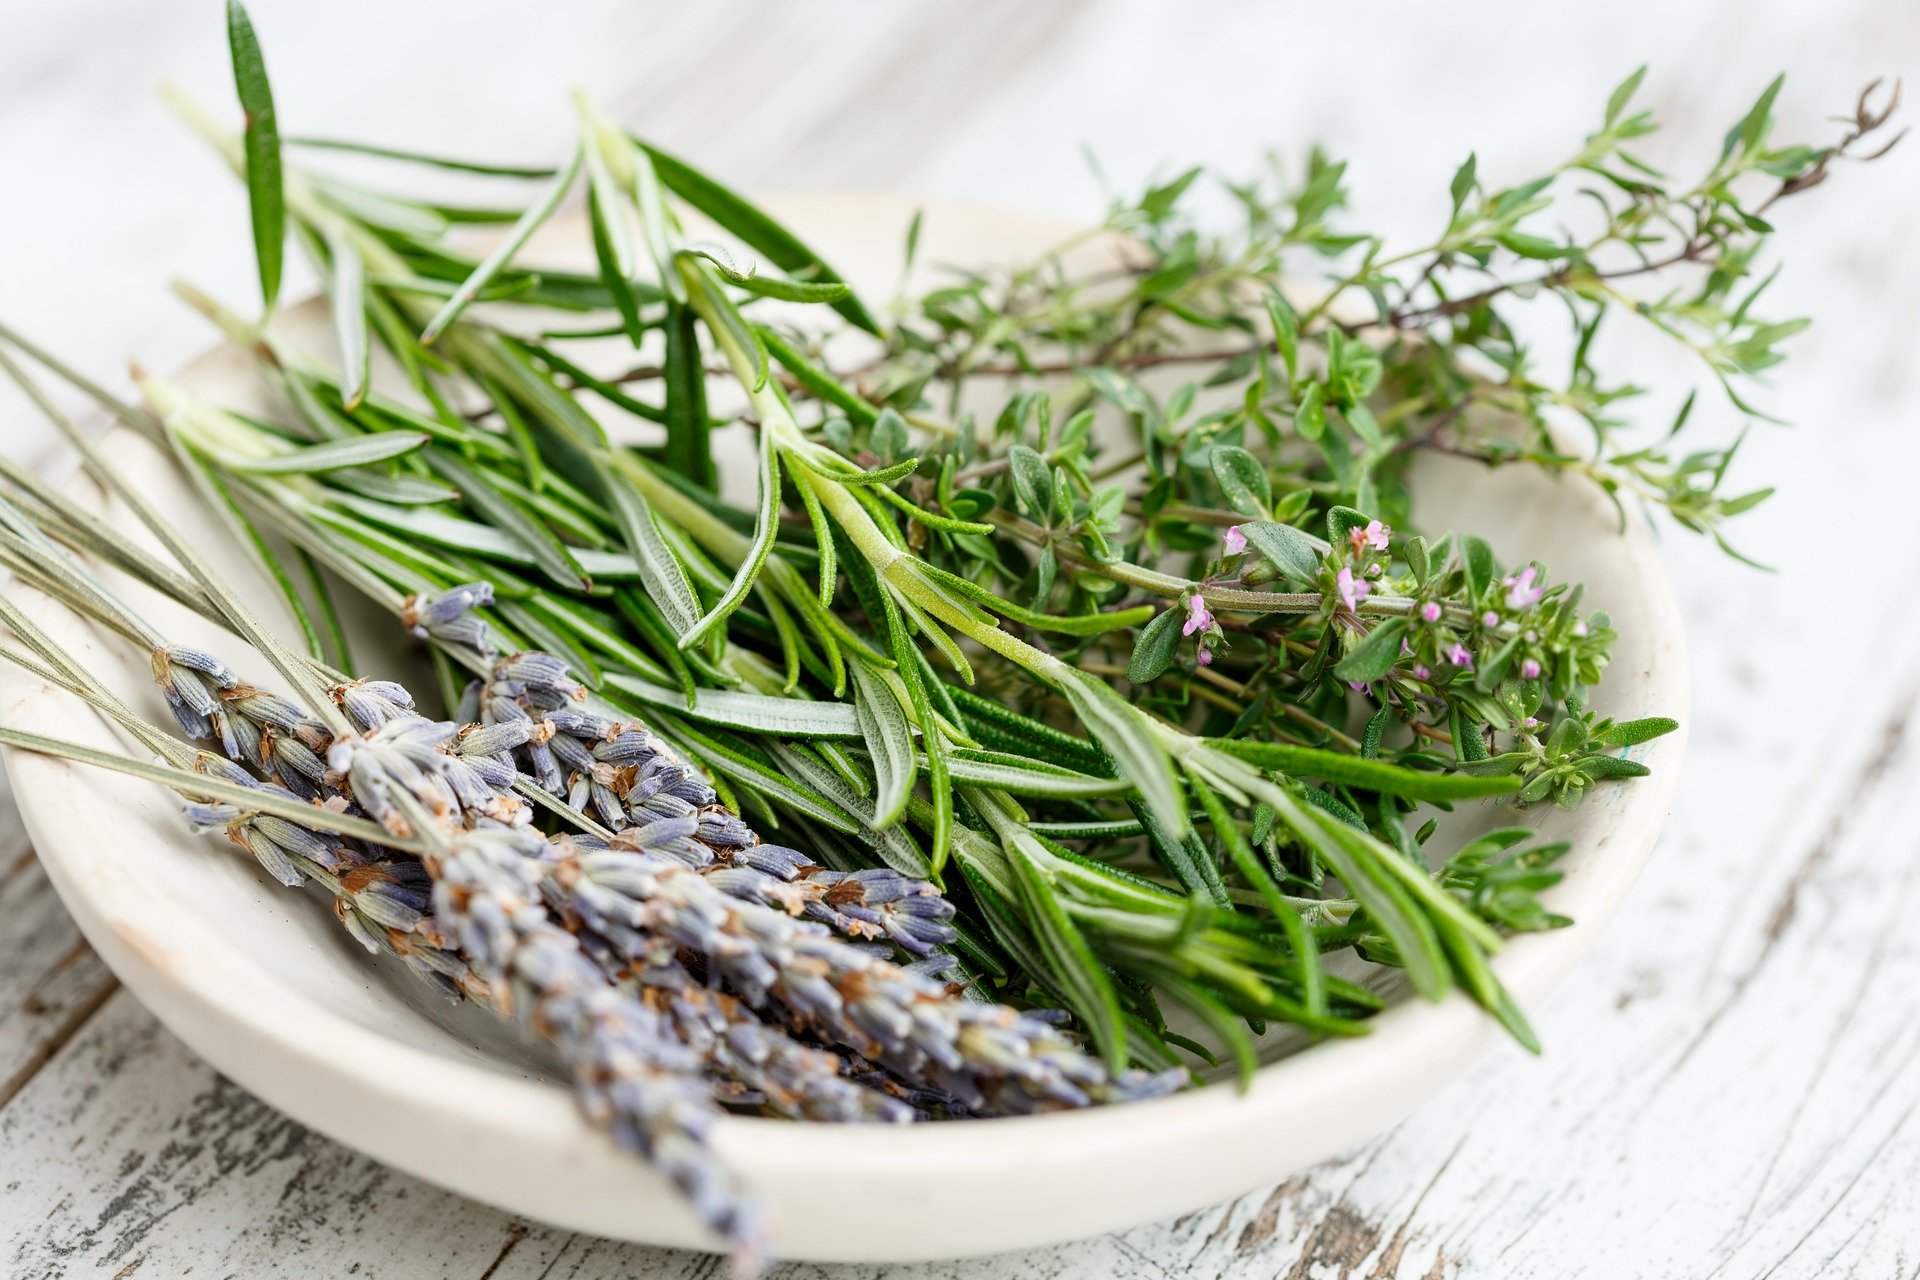 Lavender and rosemary.